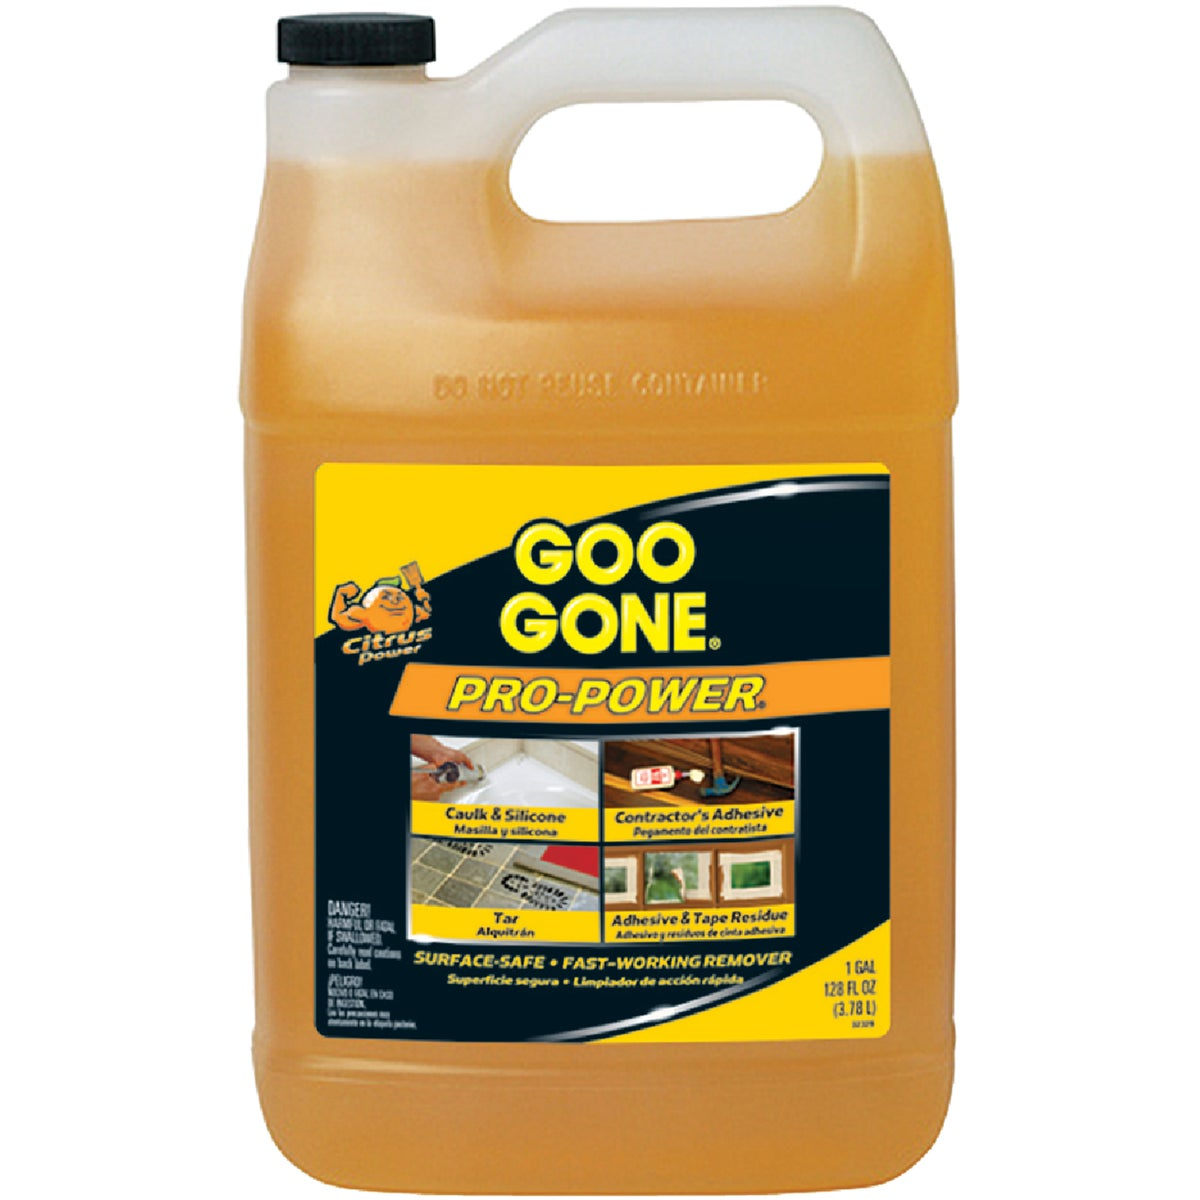 GALLON GOO GONE - GG01 by Magic Ntrl Magic Sci